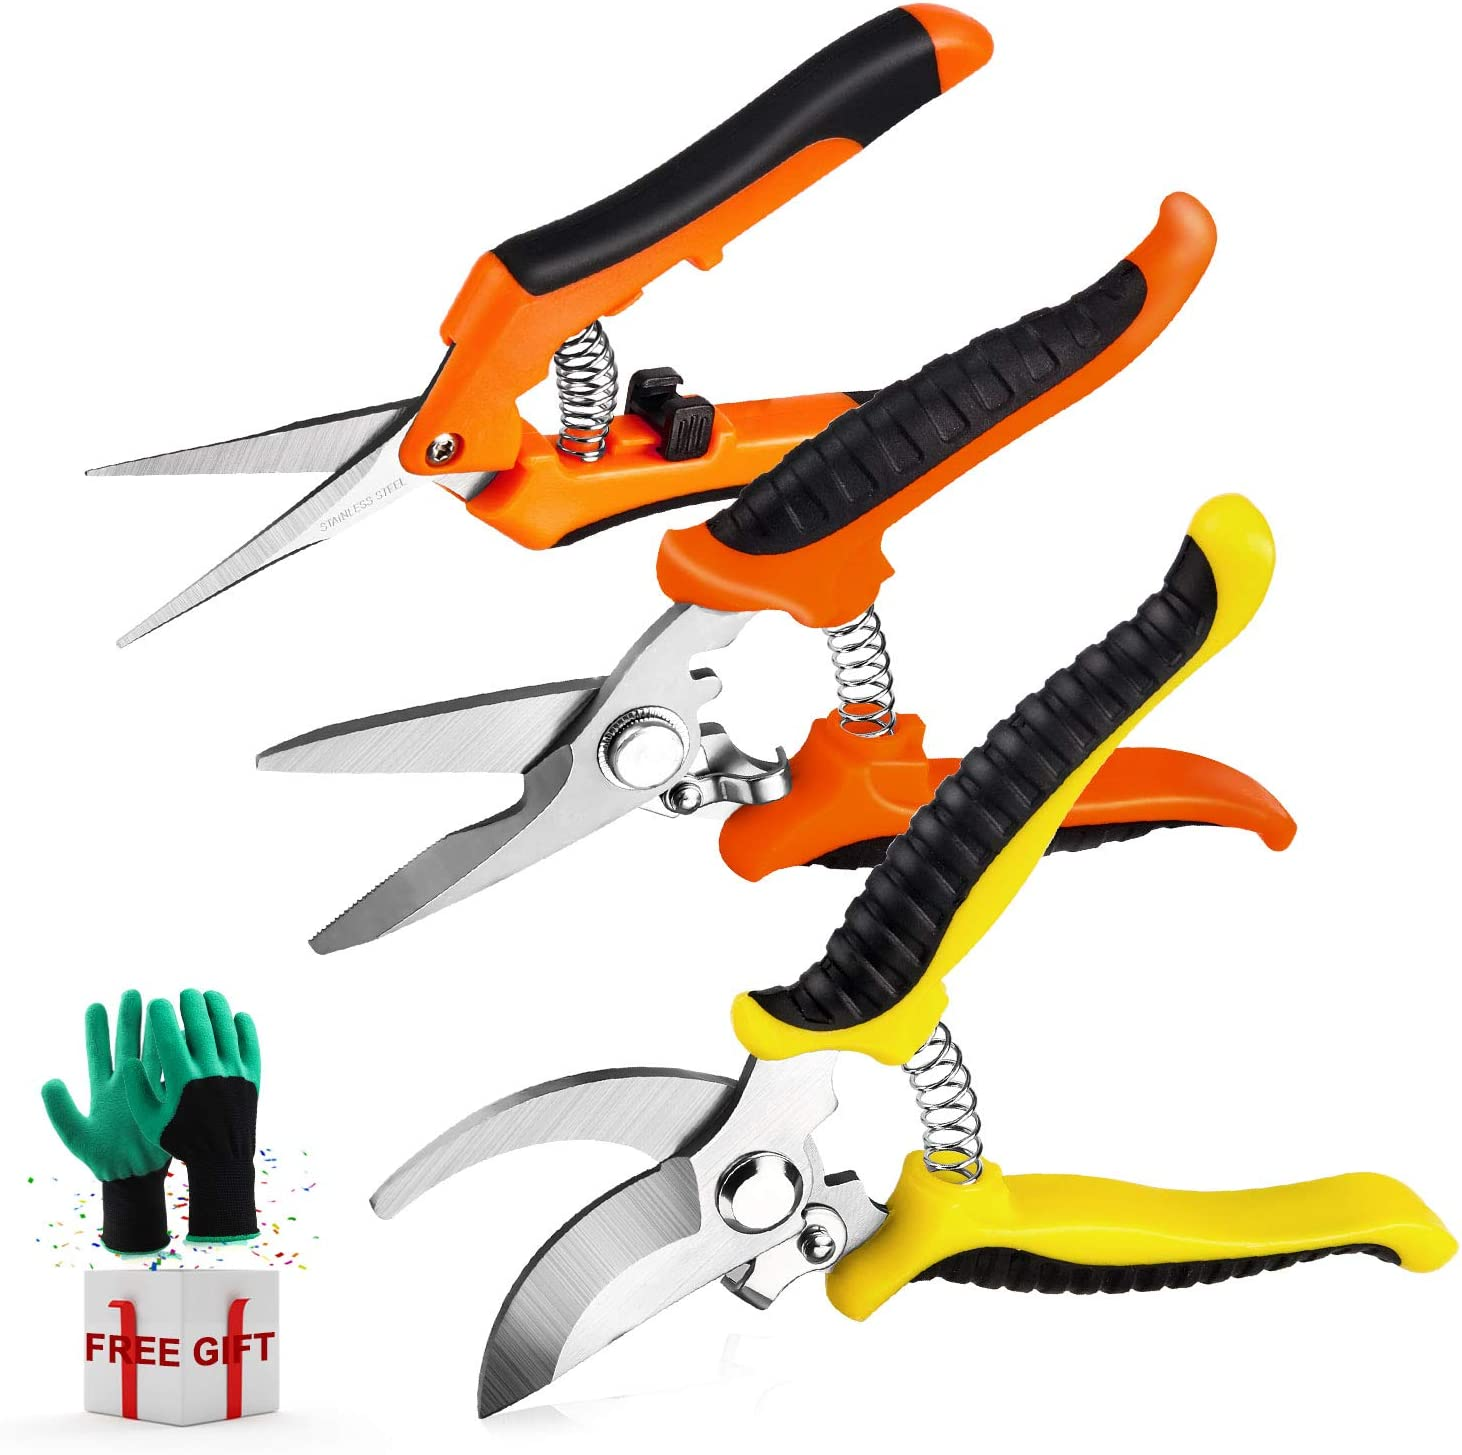 3 Pack Garden Pruning Shears Stainless Steel Blades Handheld Pruners Set with Gardening Gloves: Home Improvement